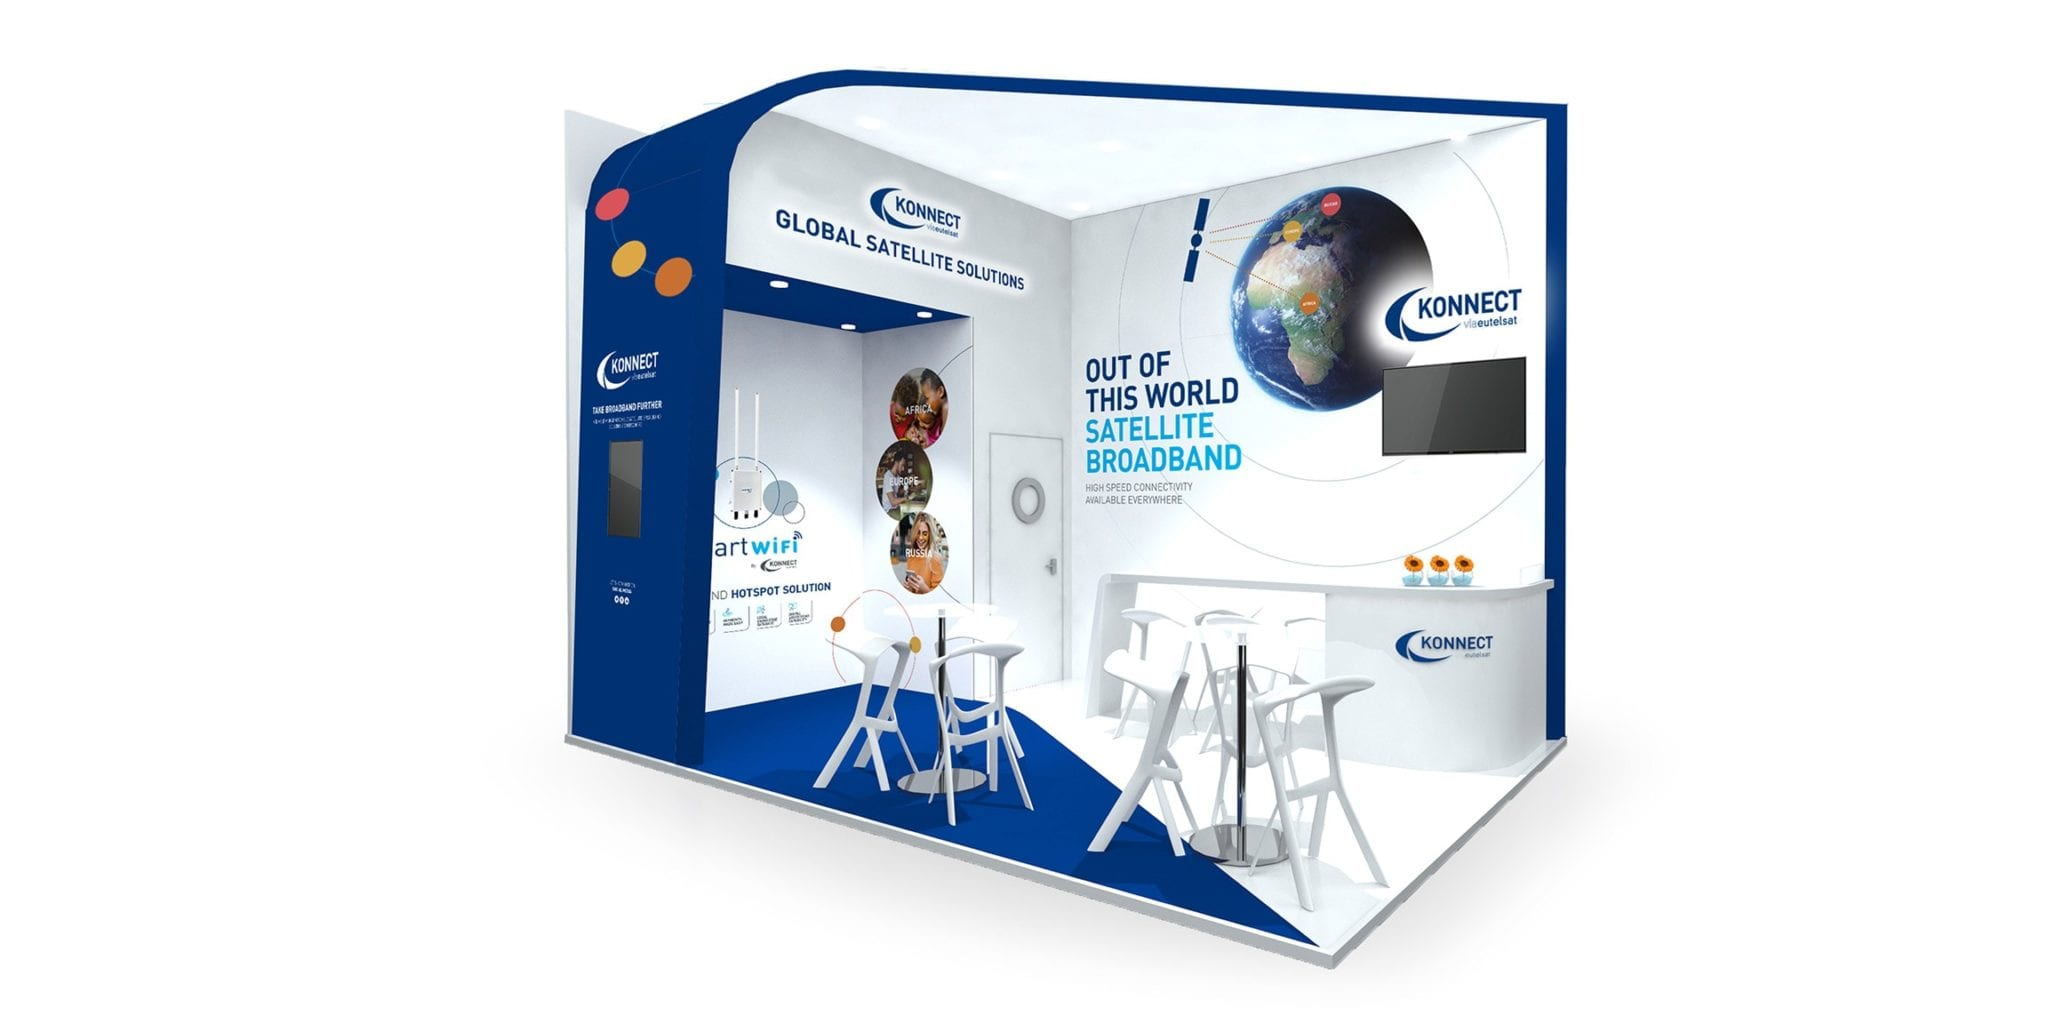 A single 3d render of the Konnect exhibition stand design and complete branding